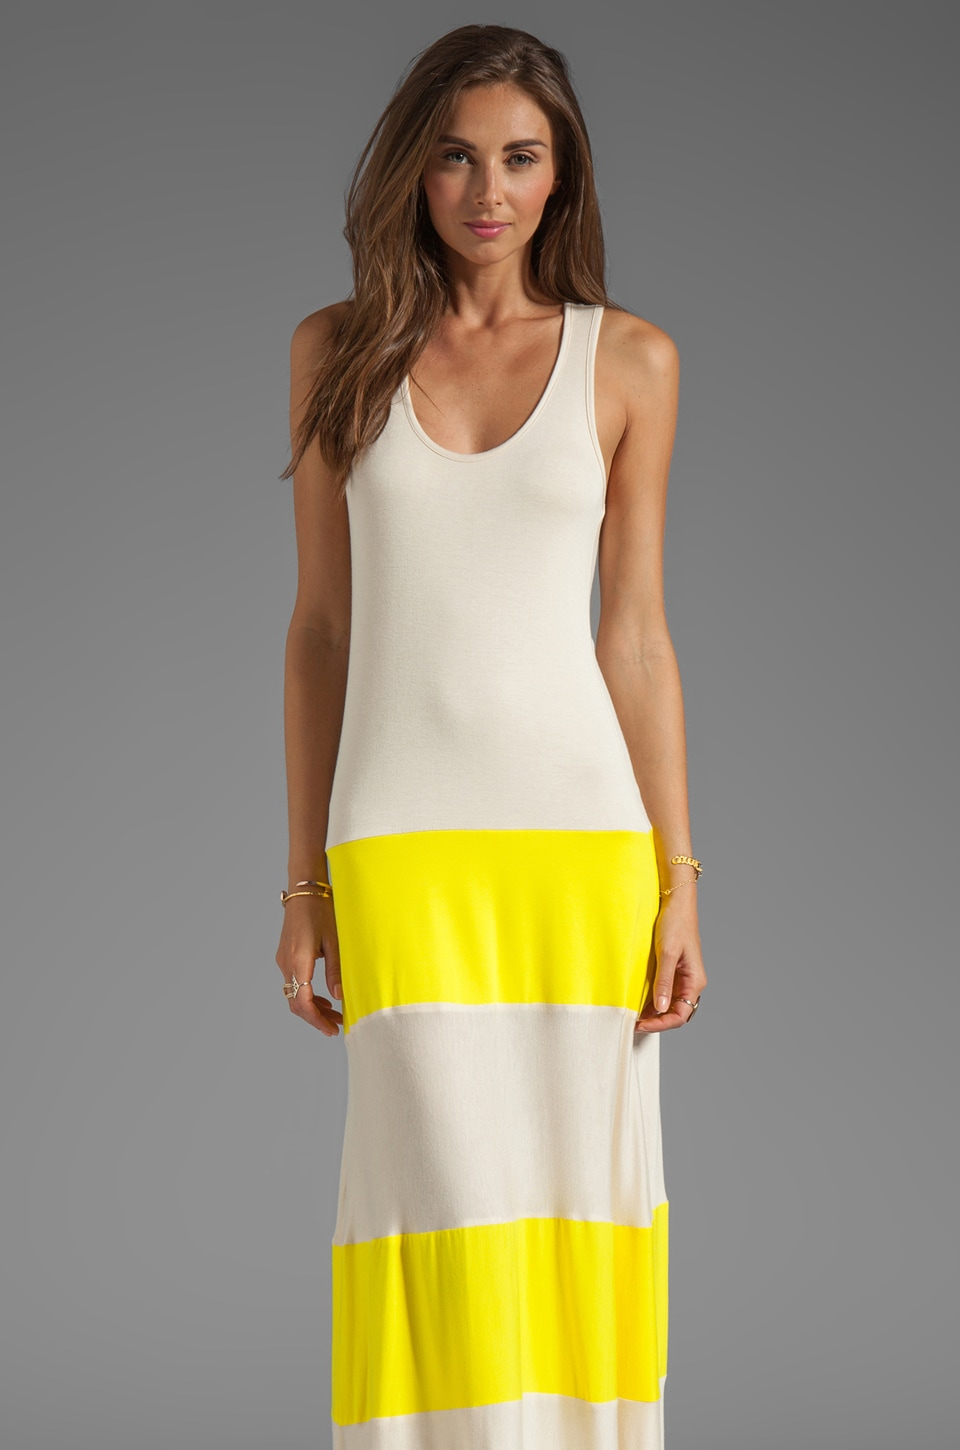 Karina Grimaldi Biscot Maxi Dress in Yellow/Nude Combo